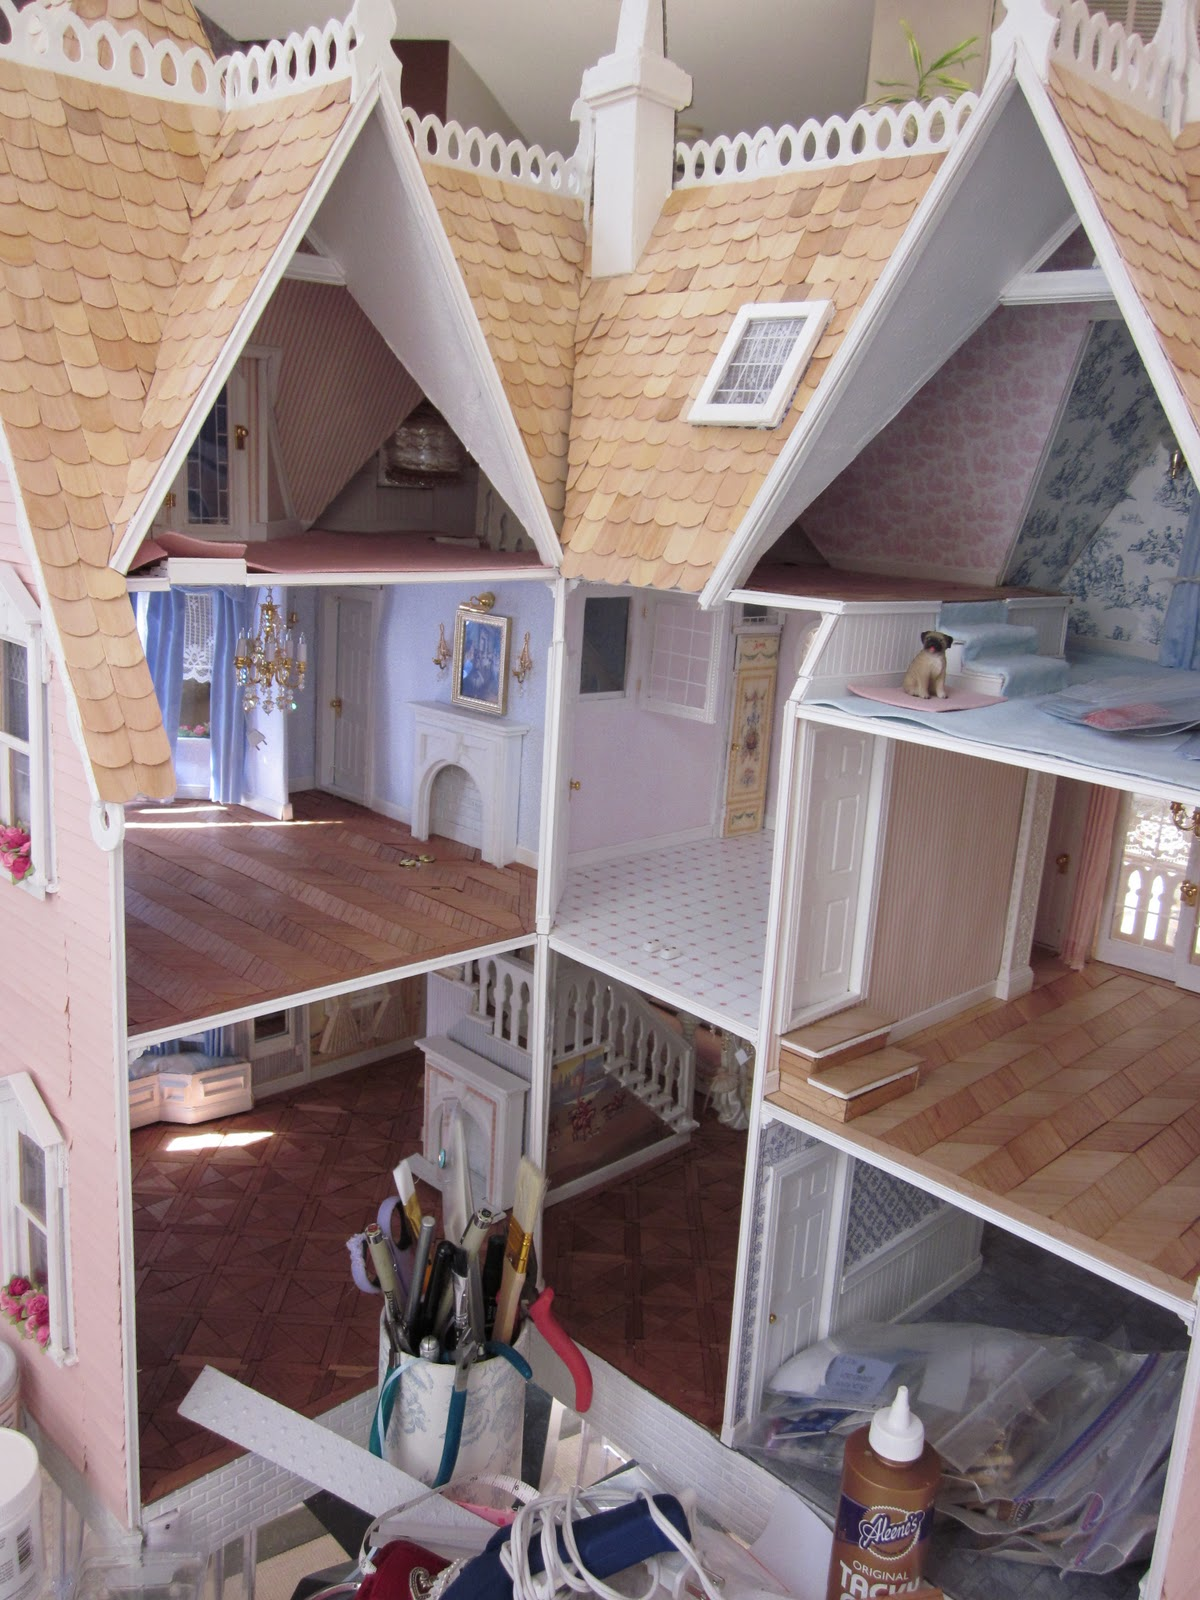 La Grande Maison The Greenleaf Garfield Dollhouse Parquet